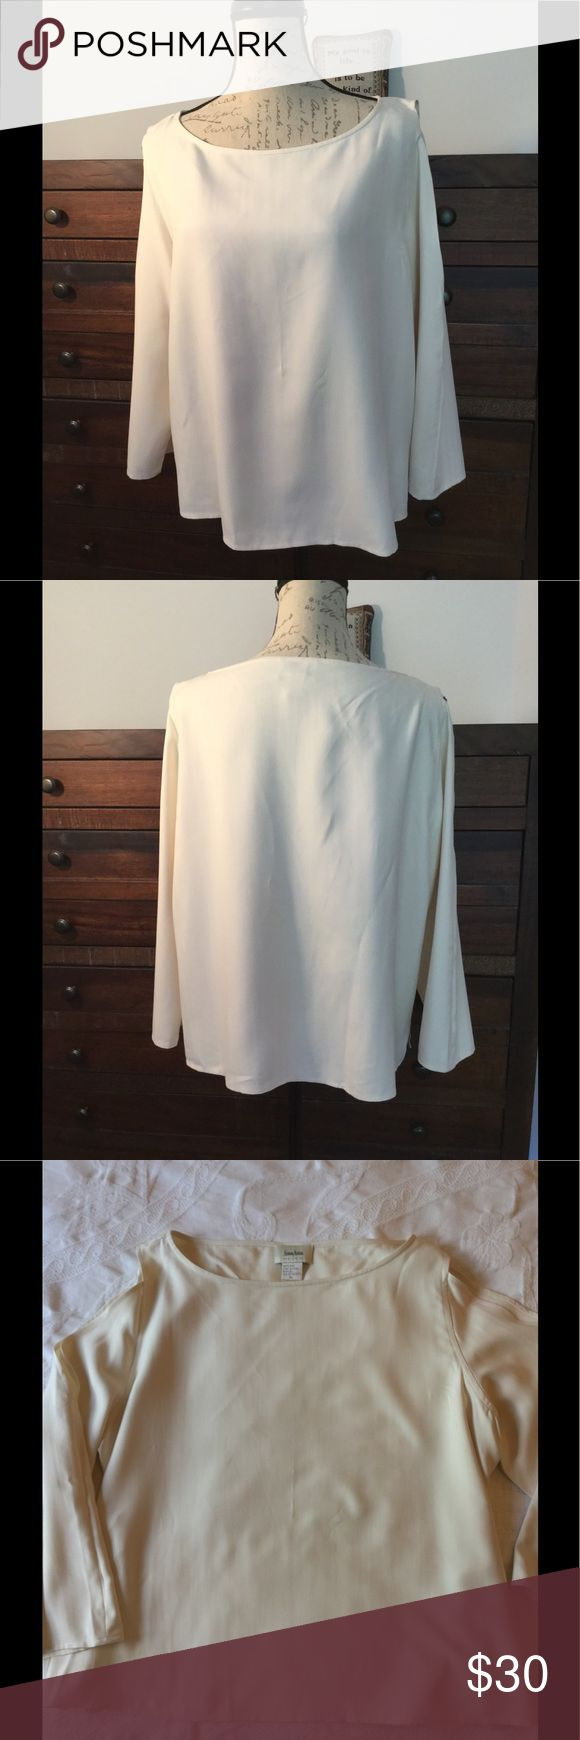 Neimen Marcus Shoulderless Blouse Neiman Marcus blouse, long sleeves, open shoulders.  100% Silk.  Soft & fluid very fun Top with open shoulders  dressy or casual Neiman Marcus Tops Blouses